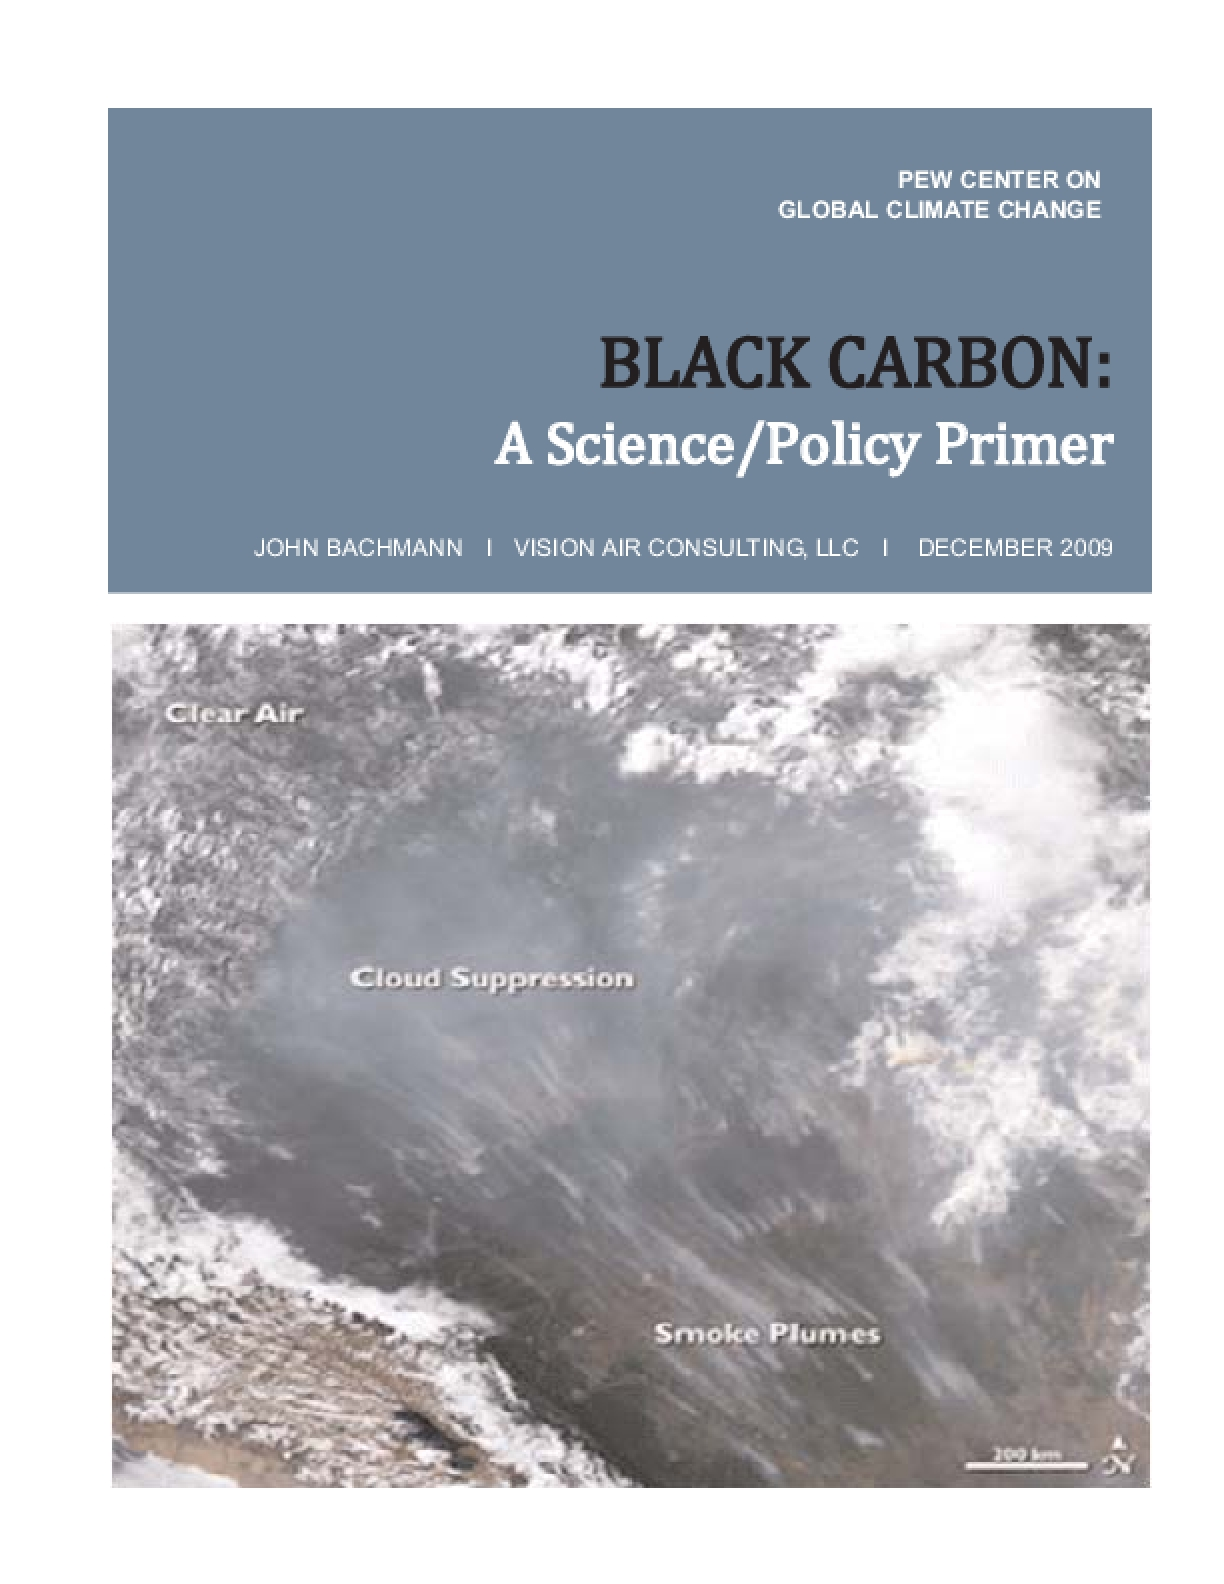 Black Carbon: A Science/Policy Primer